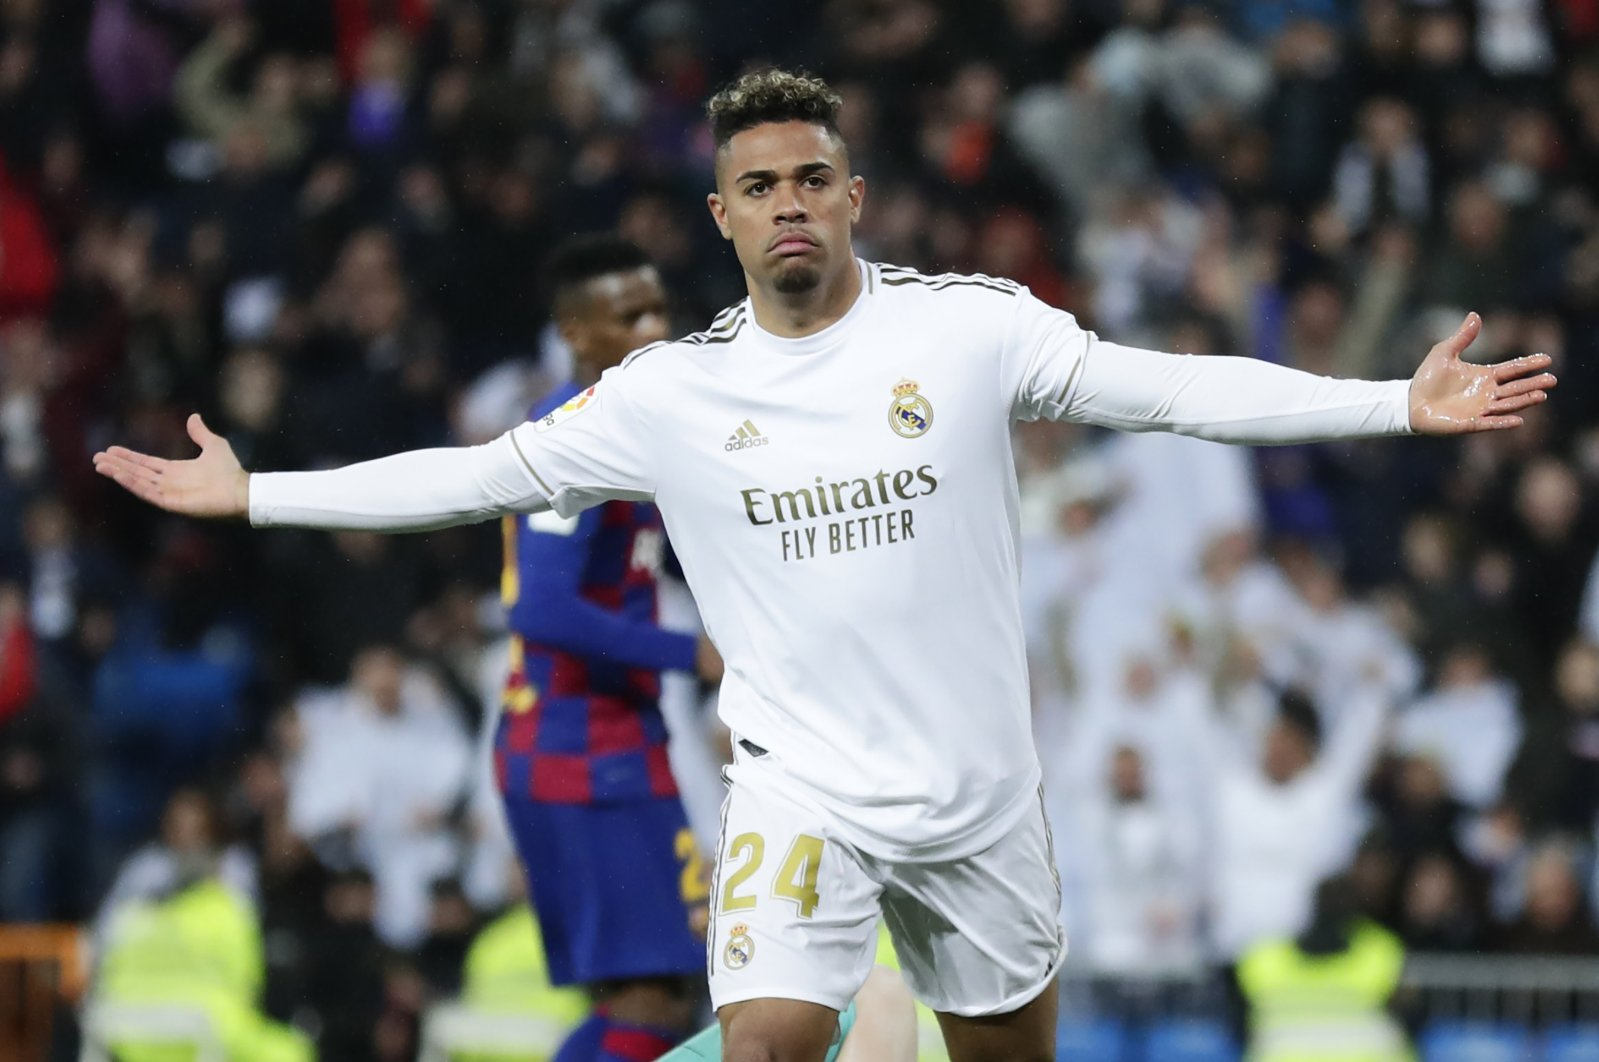 Real Madrid's Mariano Diaz celebrates after scoring his side's second goal during the Spanish La Liga soccer match between Real Madrid and Barcelona at the Santiago Bernabeu stadium in Madrid, Spain, March 1, 2020. (AP Photo)